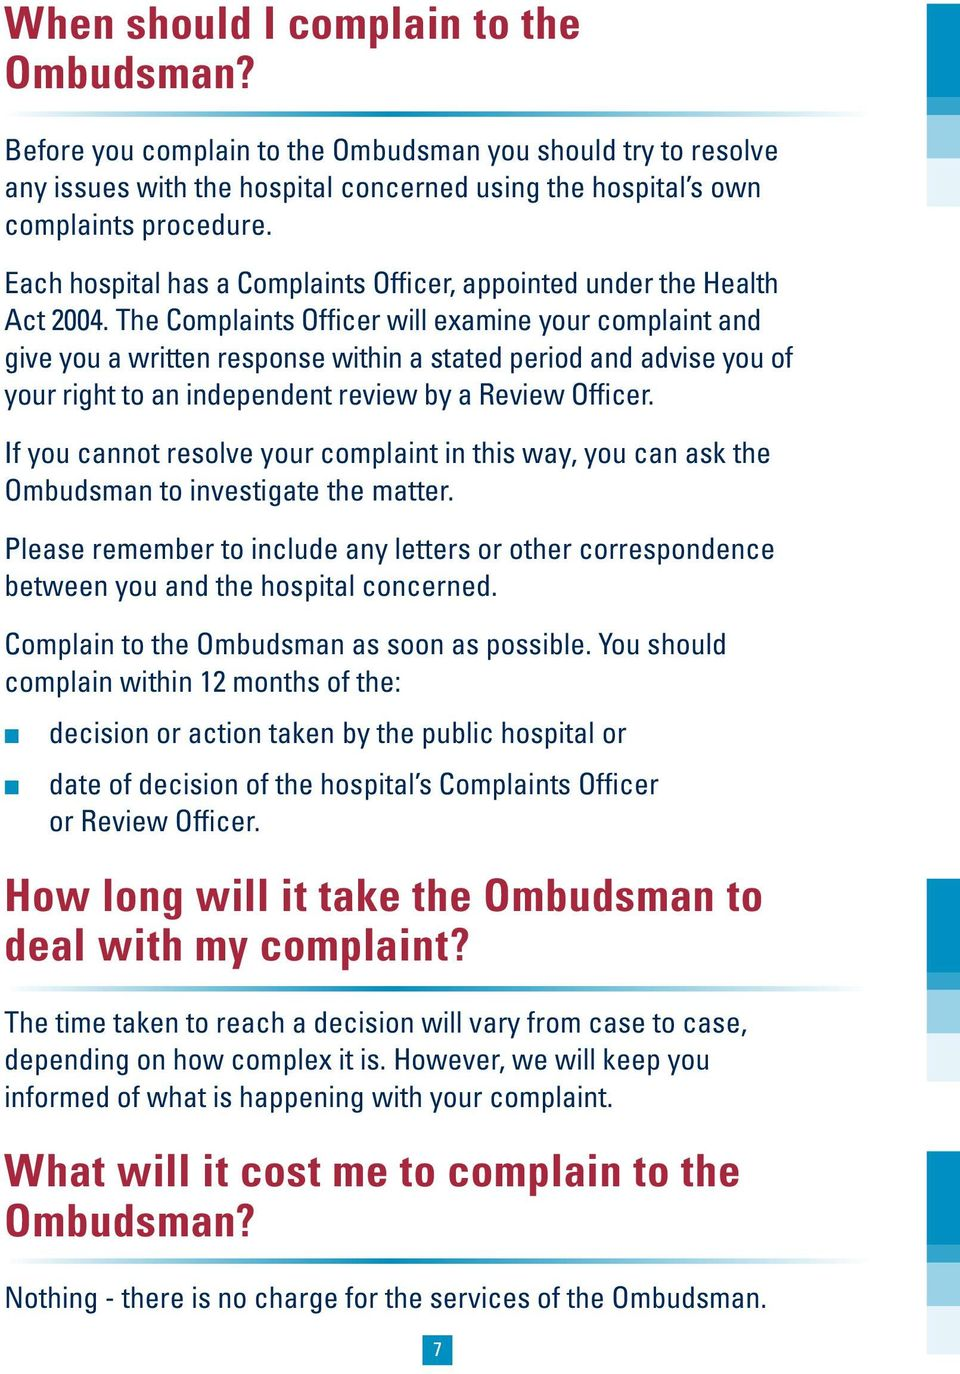 The Complaints Officer will examine your complaint and give you a written response within a stated period and advise you of your right to an independent review by a Review Officer.